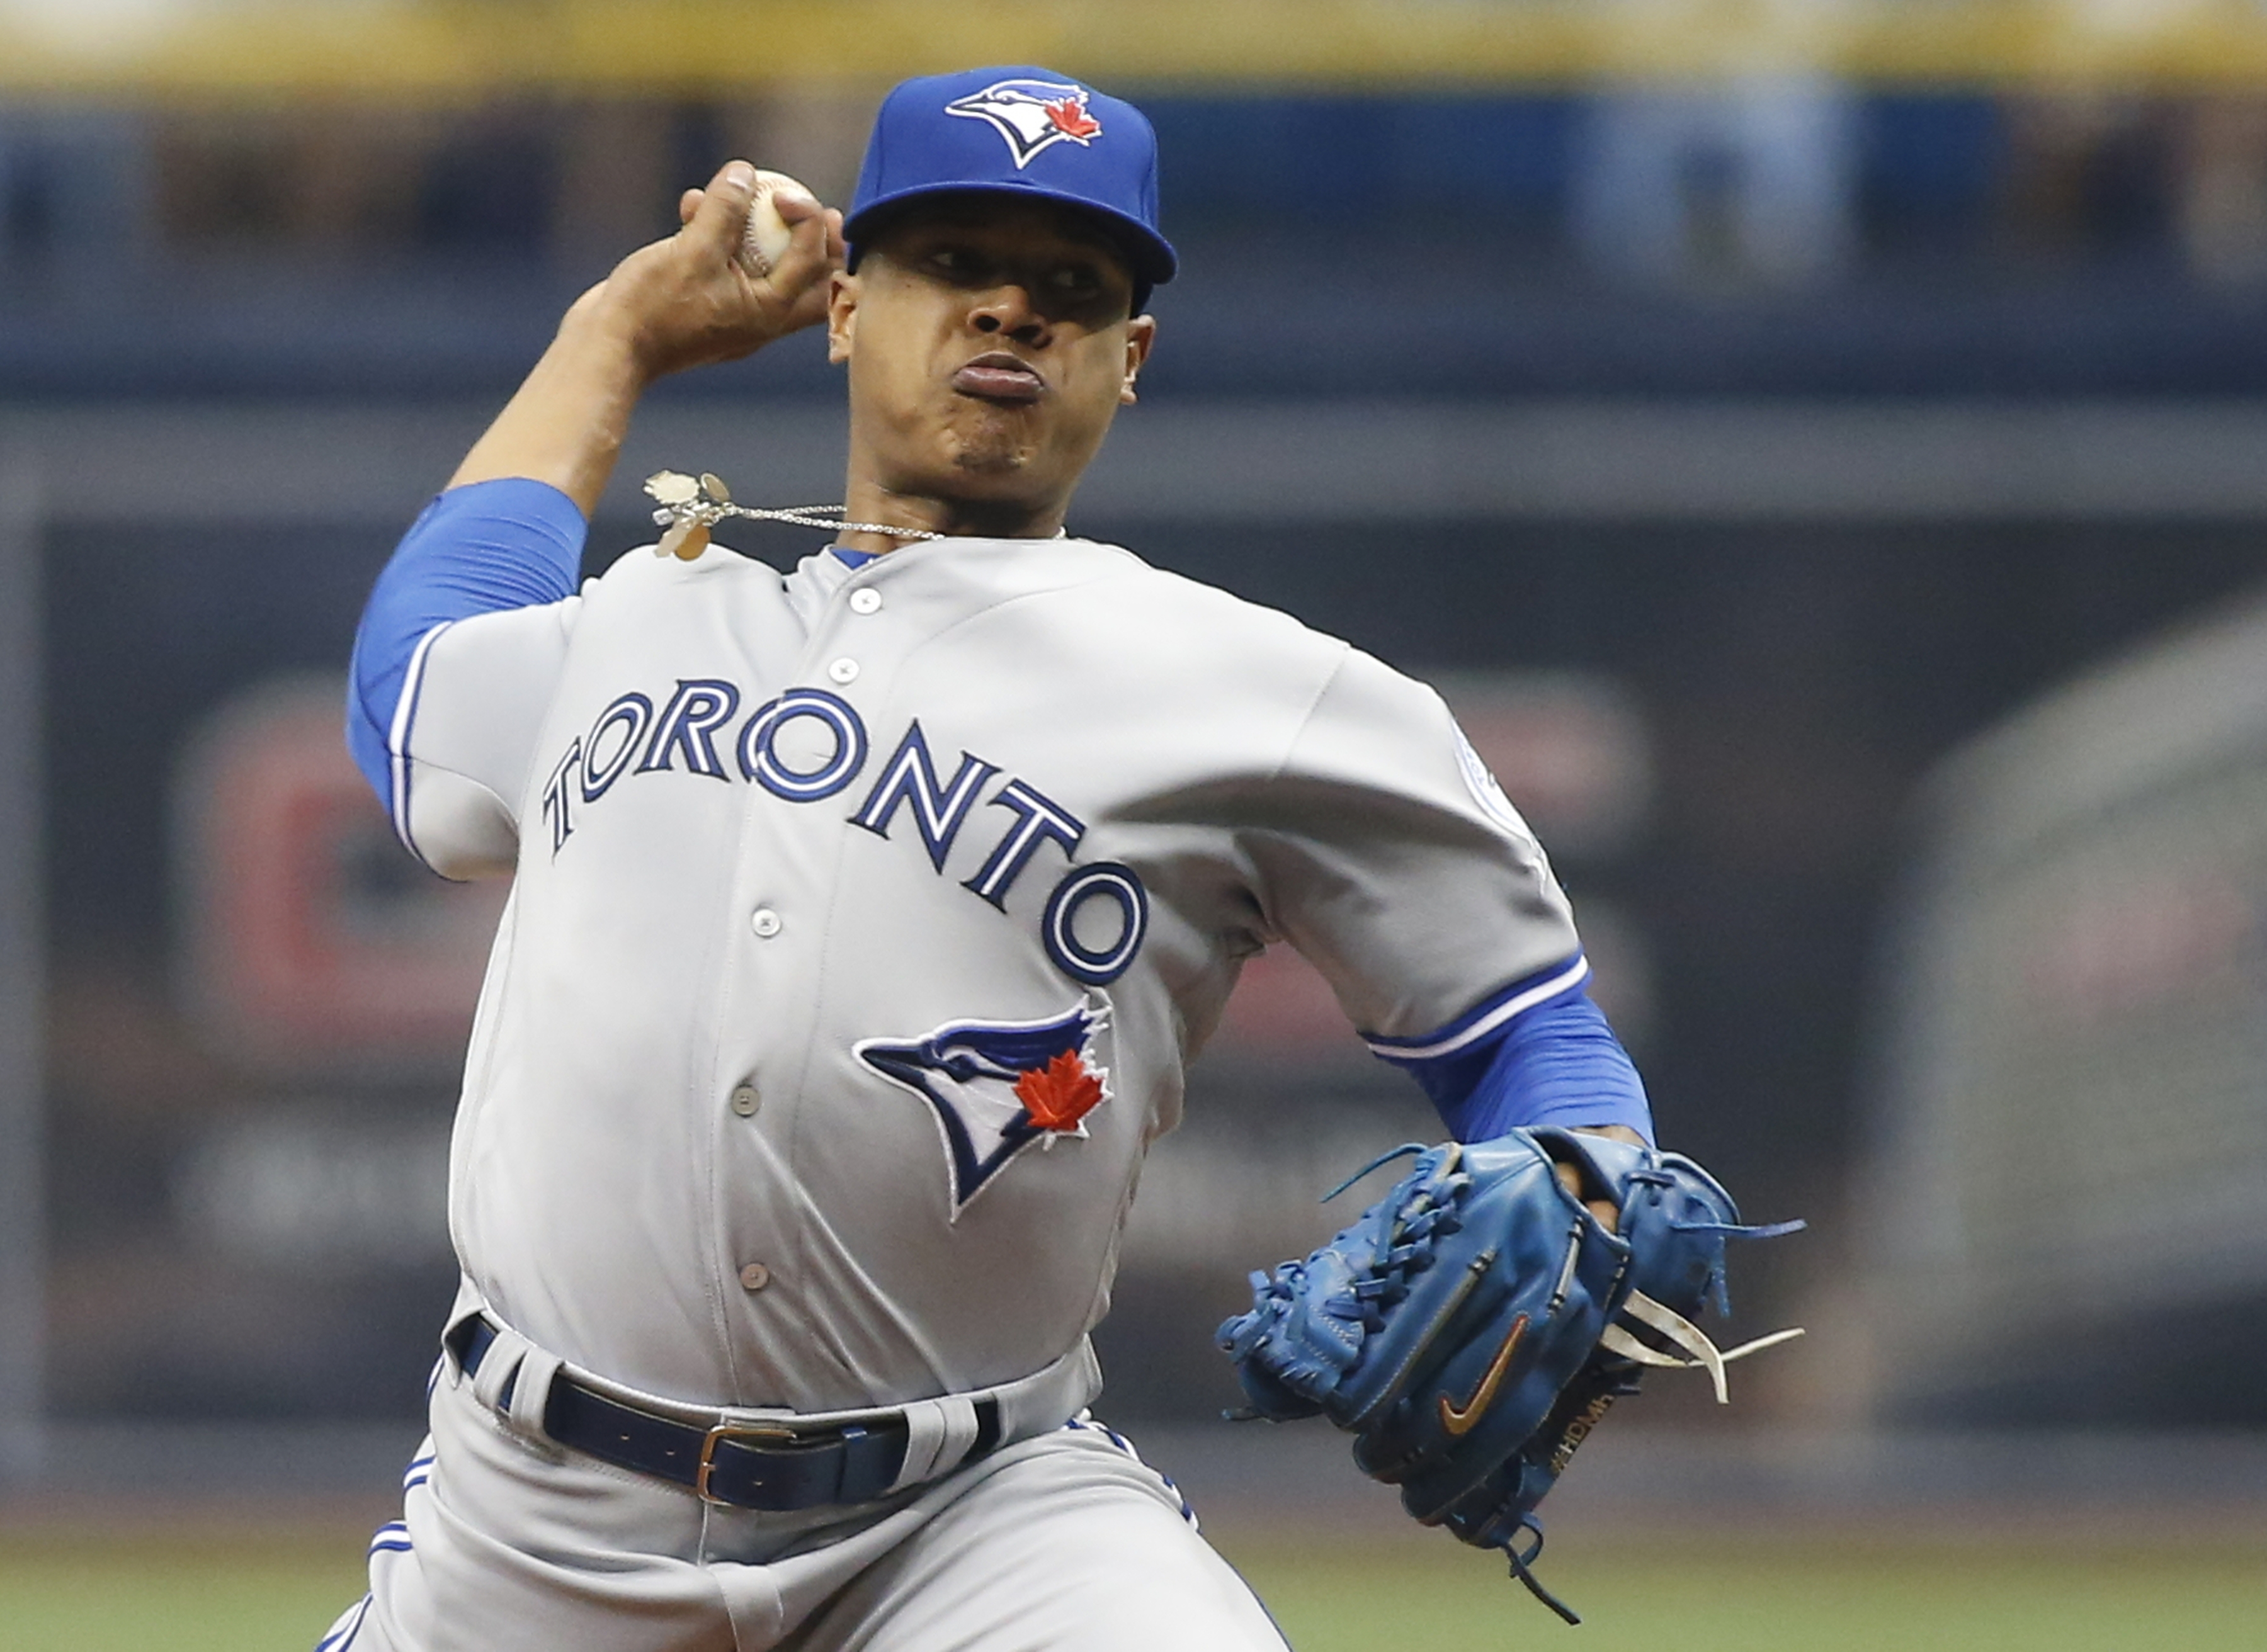 Marcus Stroman's 4-0 September of 2015 that helped the Blue Jays reach the postseason seems like a distant memory now.